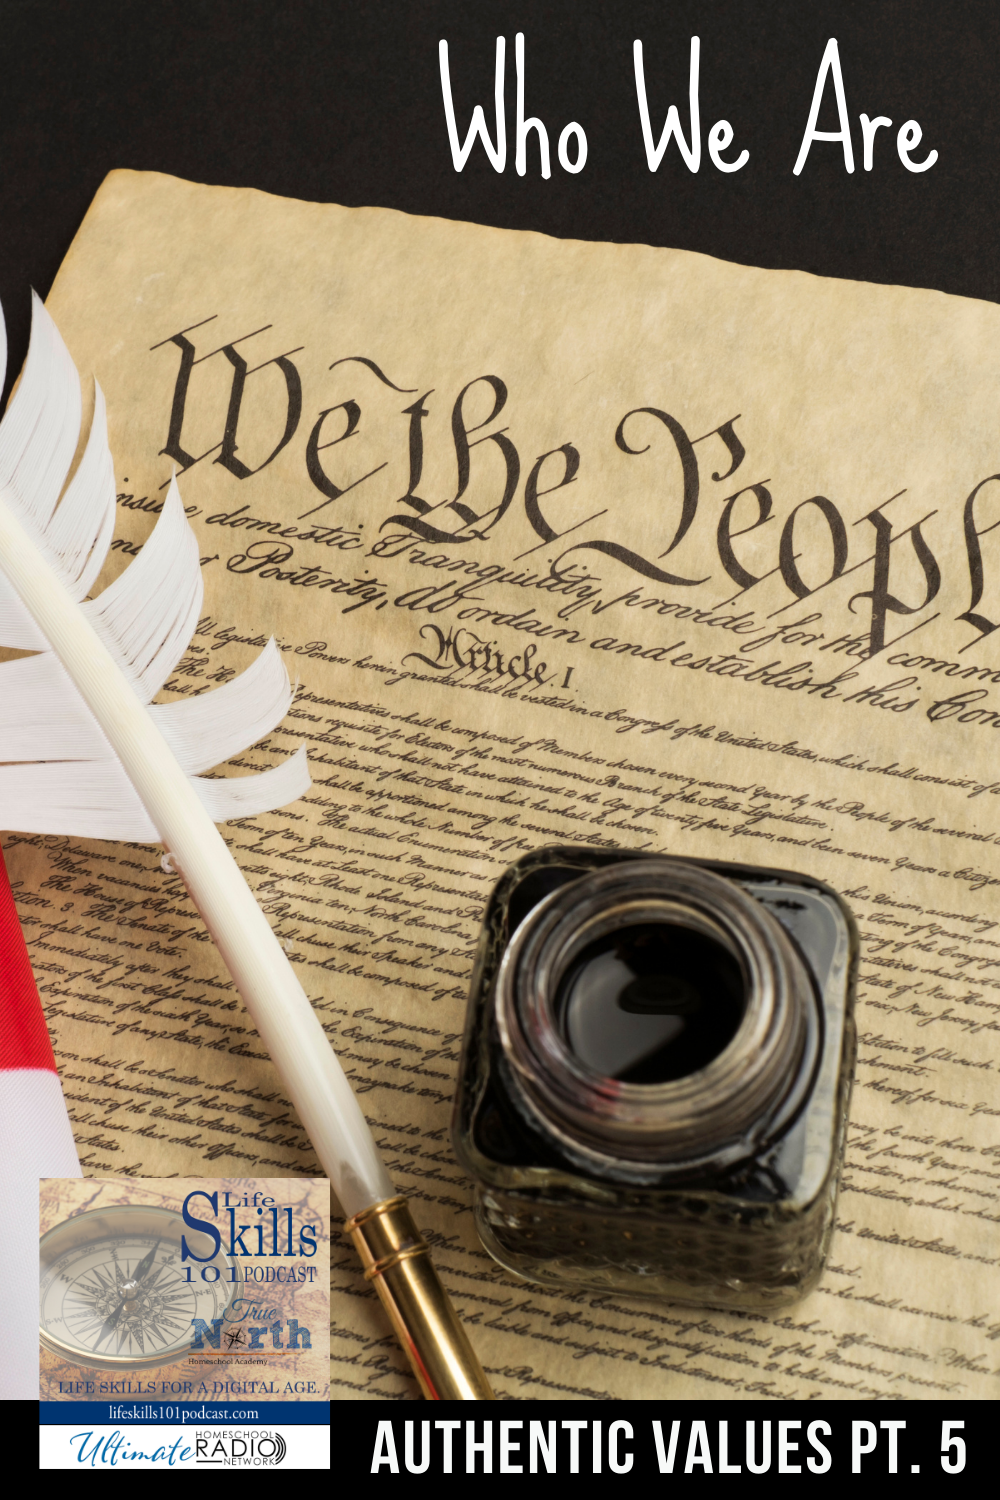 Authentic Values; We Hold these Truths to be Self-Evident